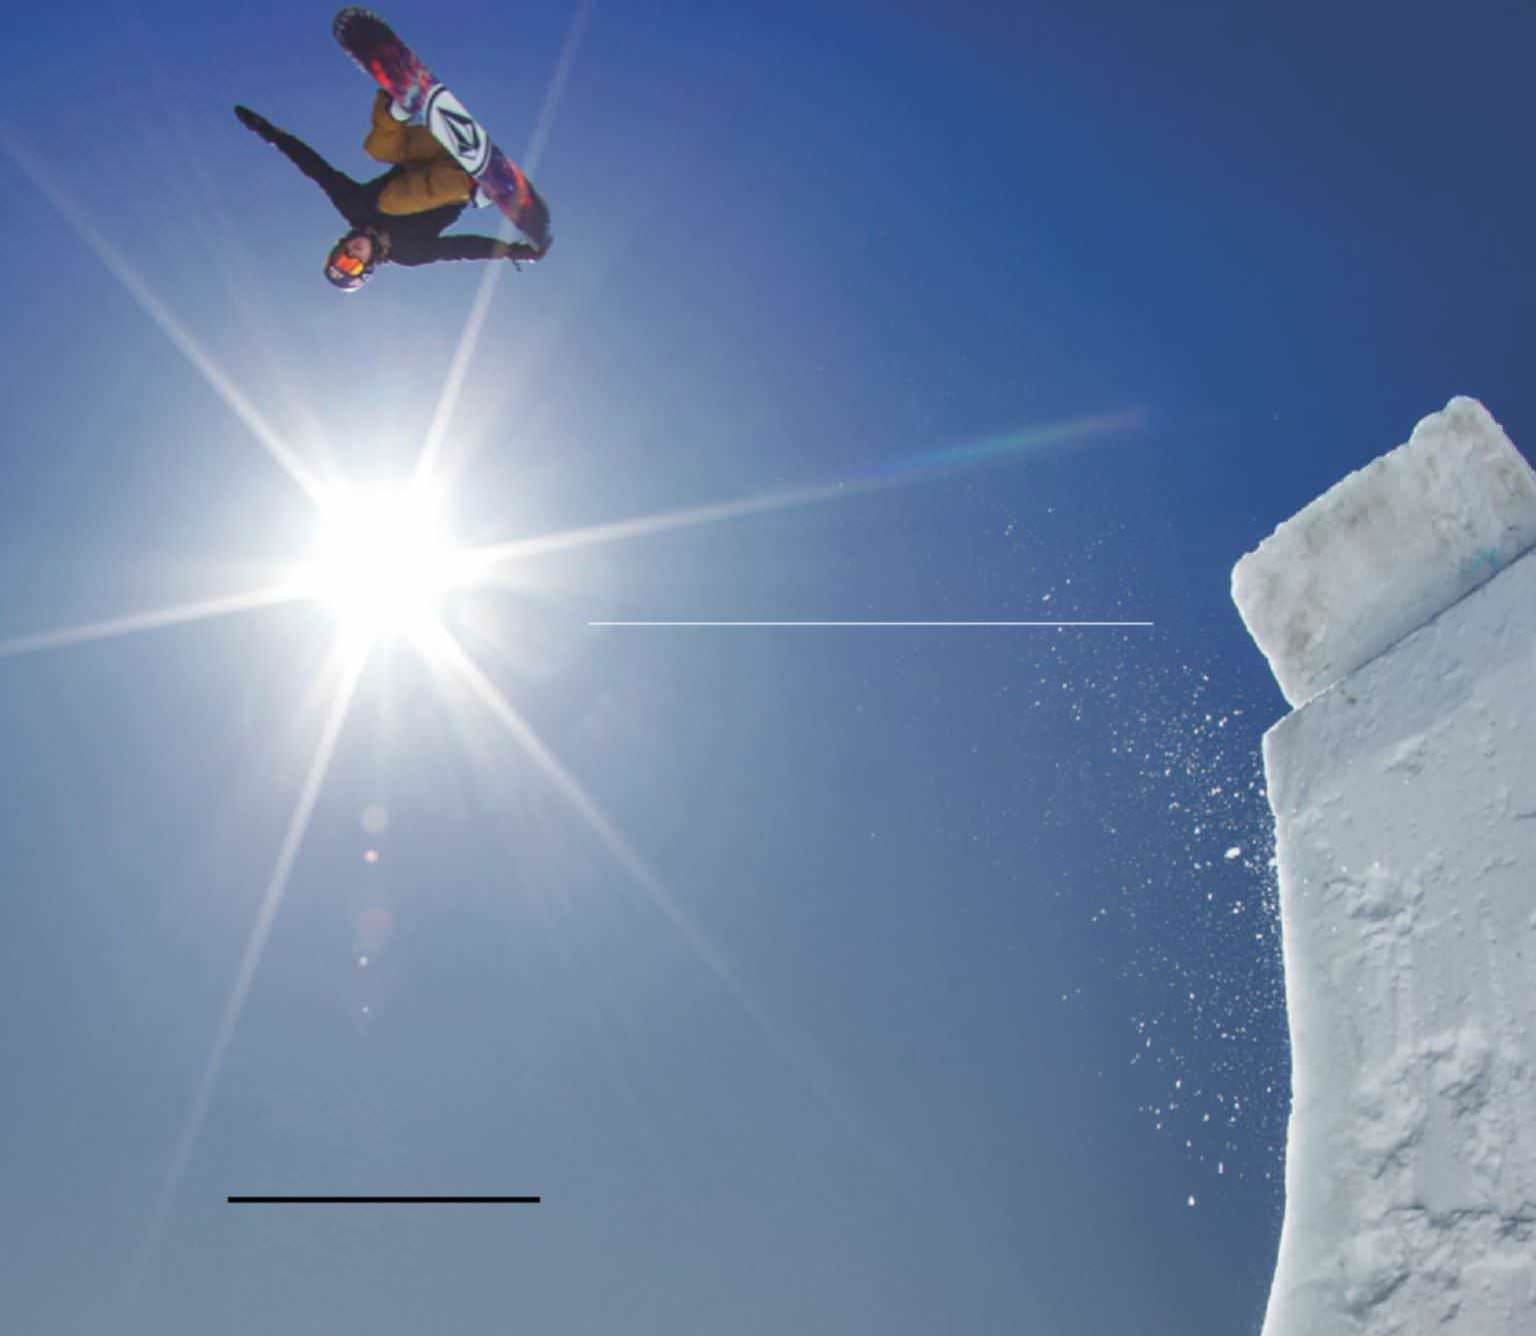 Anatomy Of An Athlete: The Snowboarder